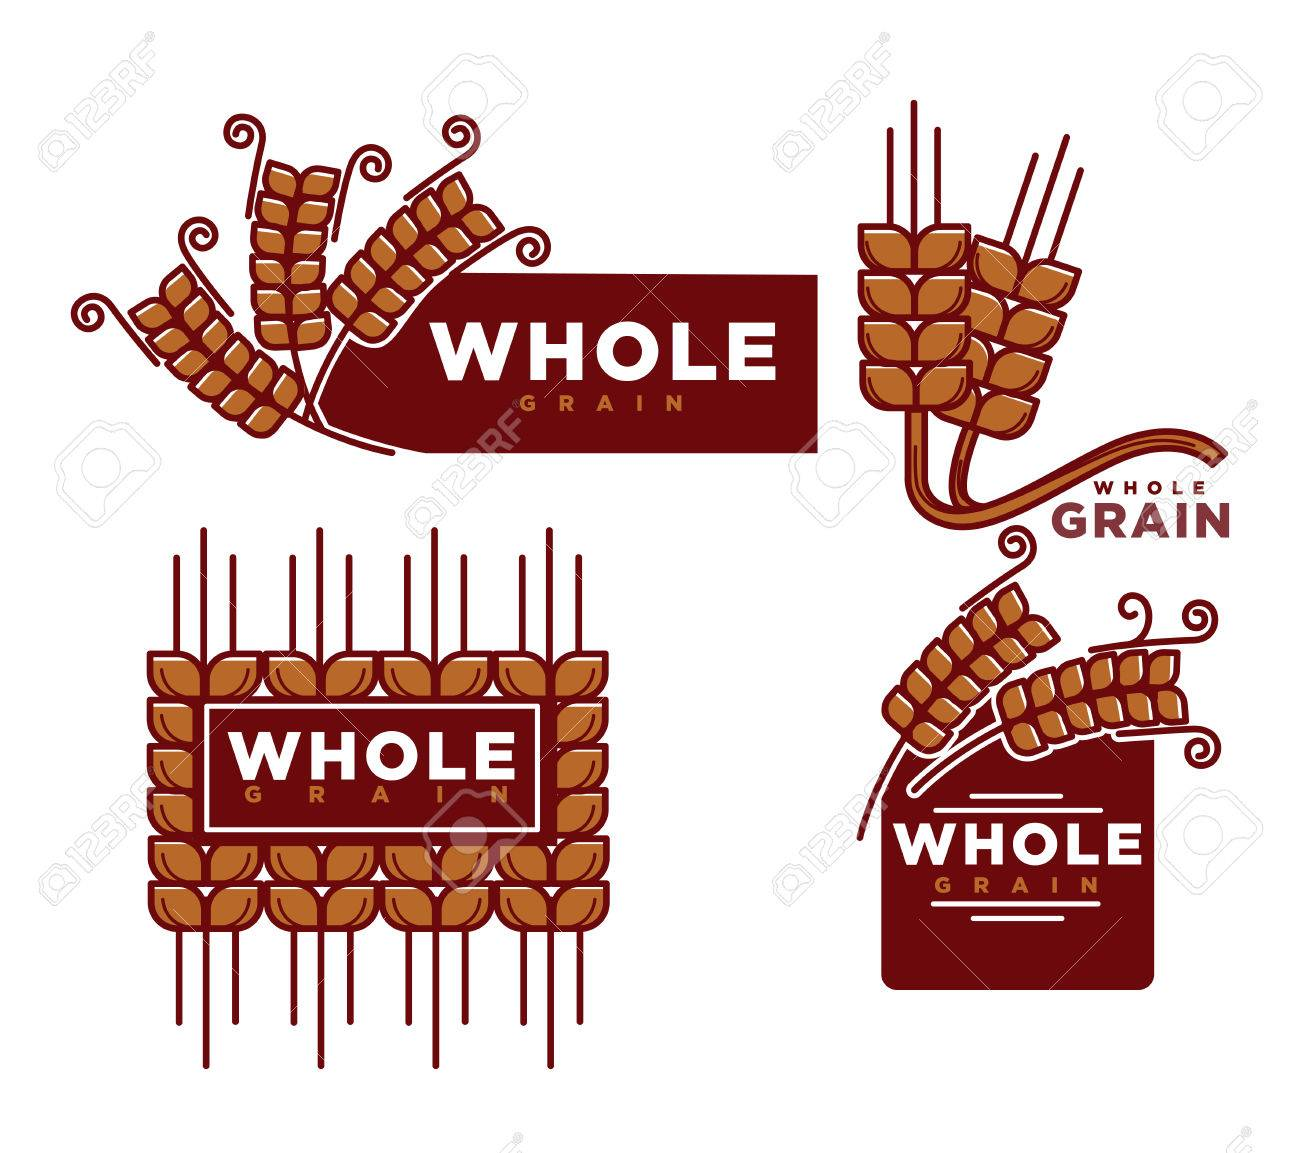 Cereals Grain Corn Wheat Barley Png Image - Outline Of Wheat Clipart  (#2569299) - PikPng